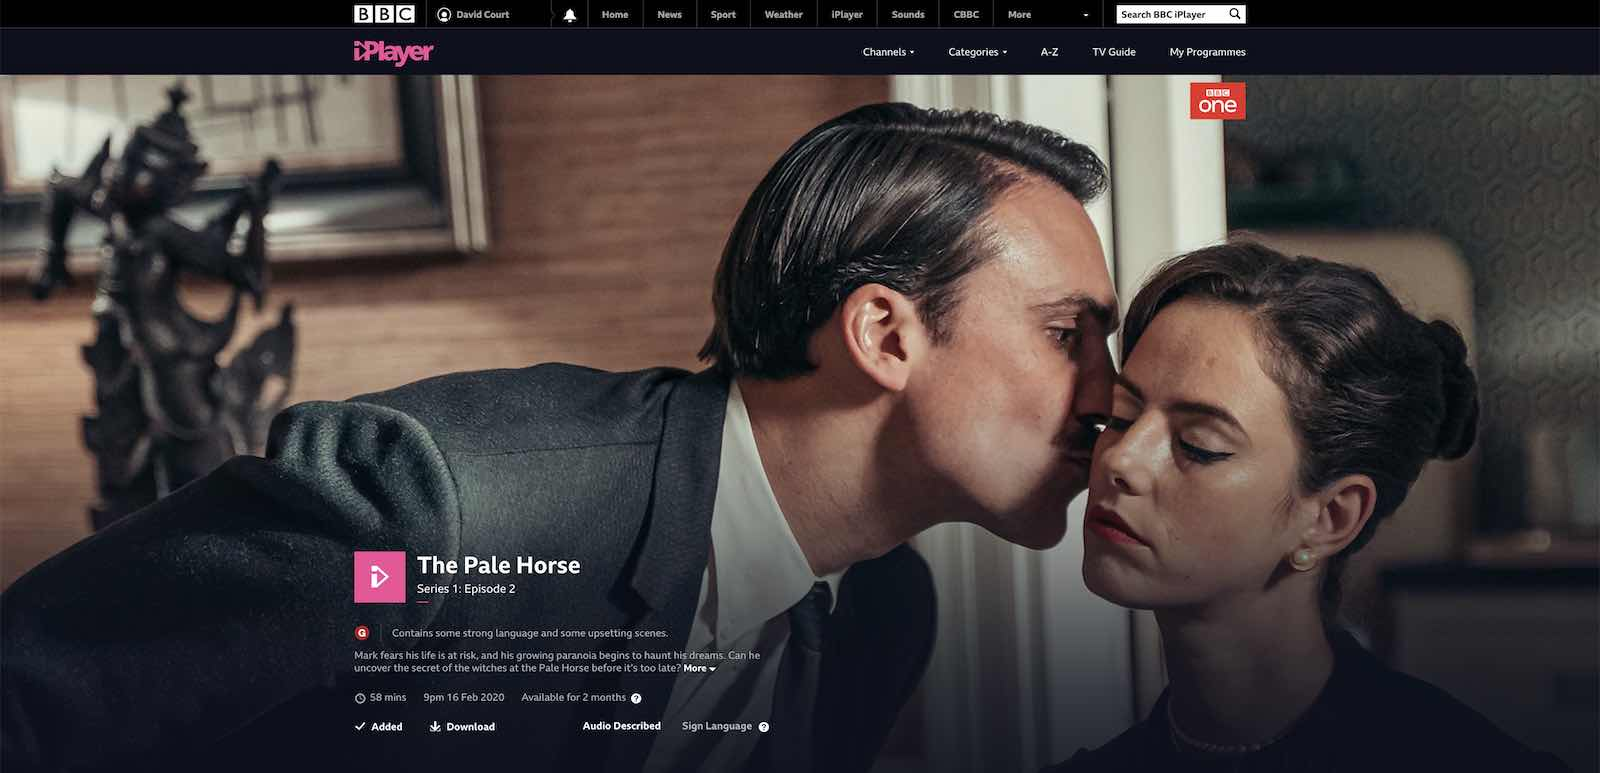 Best DNS Server for watching BBC iPlayer abroad